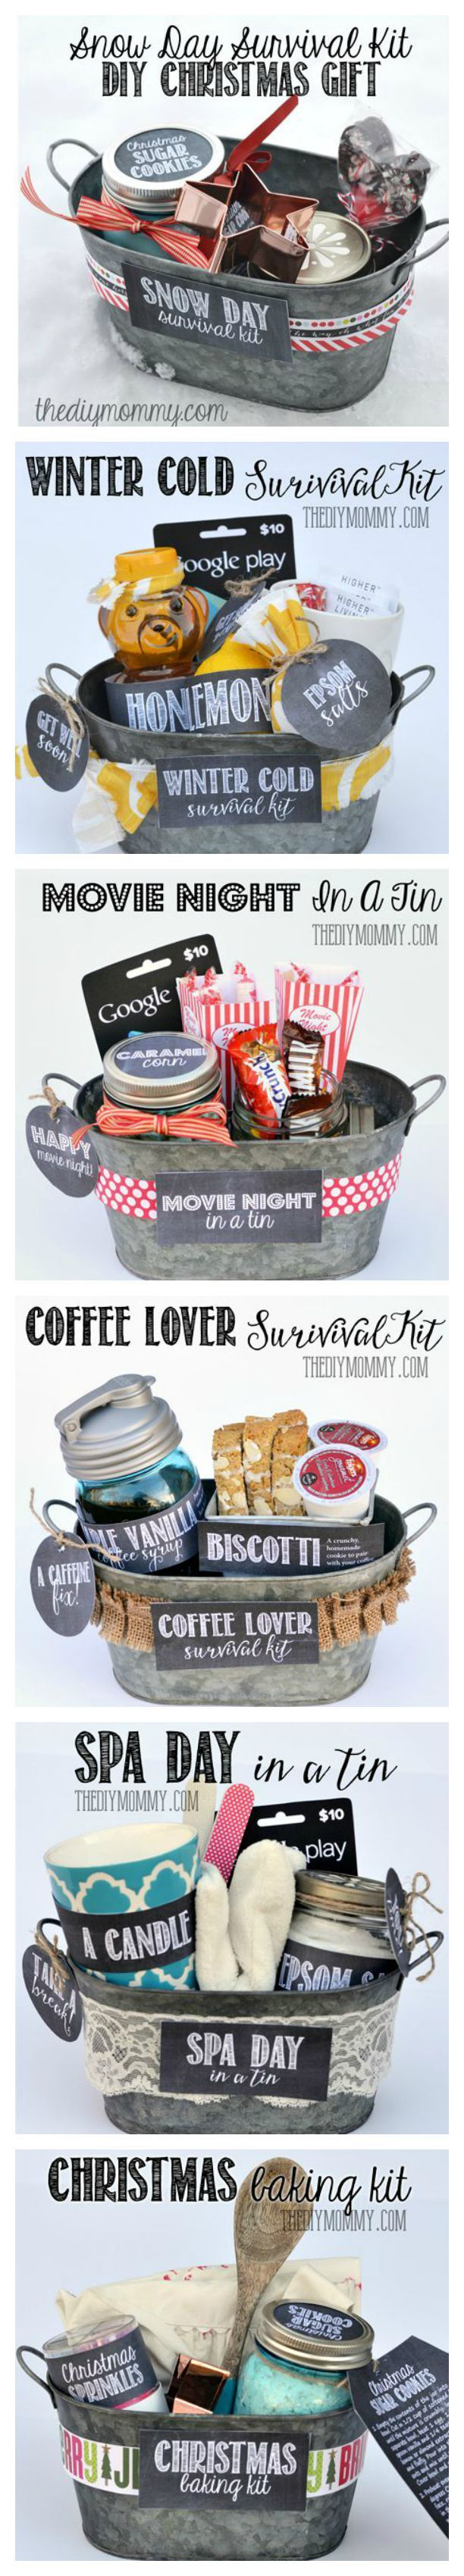 Gifts In A Tin ~ Some wonderful ideas! All 6 gift basket ideas come with free tags and labels, and a list of suggested items... Snow Day Survival Kit, Winter Cold Survival Kit, Movie Night in a Tin, Coffee Lover Survival Kit, Spa Day in a Tin, Christmas Baking Kit: http://thediymommy.com/a-gift-in-a-tin-christmas-baking-kit-gift